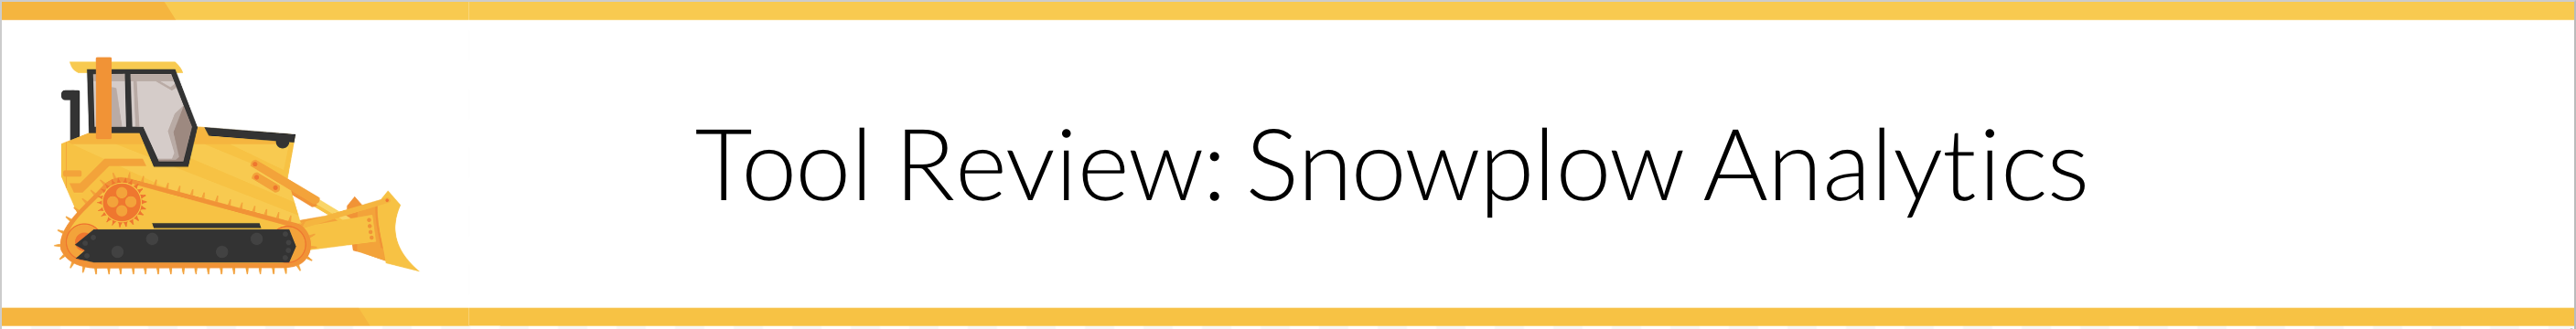 Snowplow Analytics